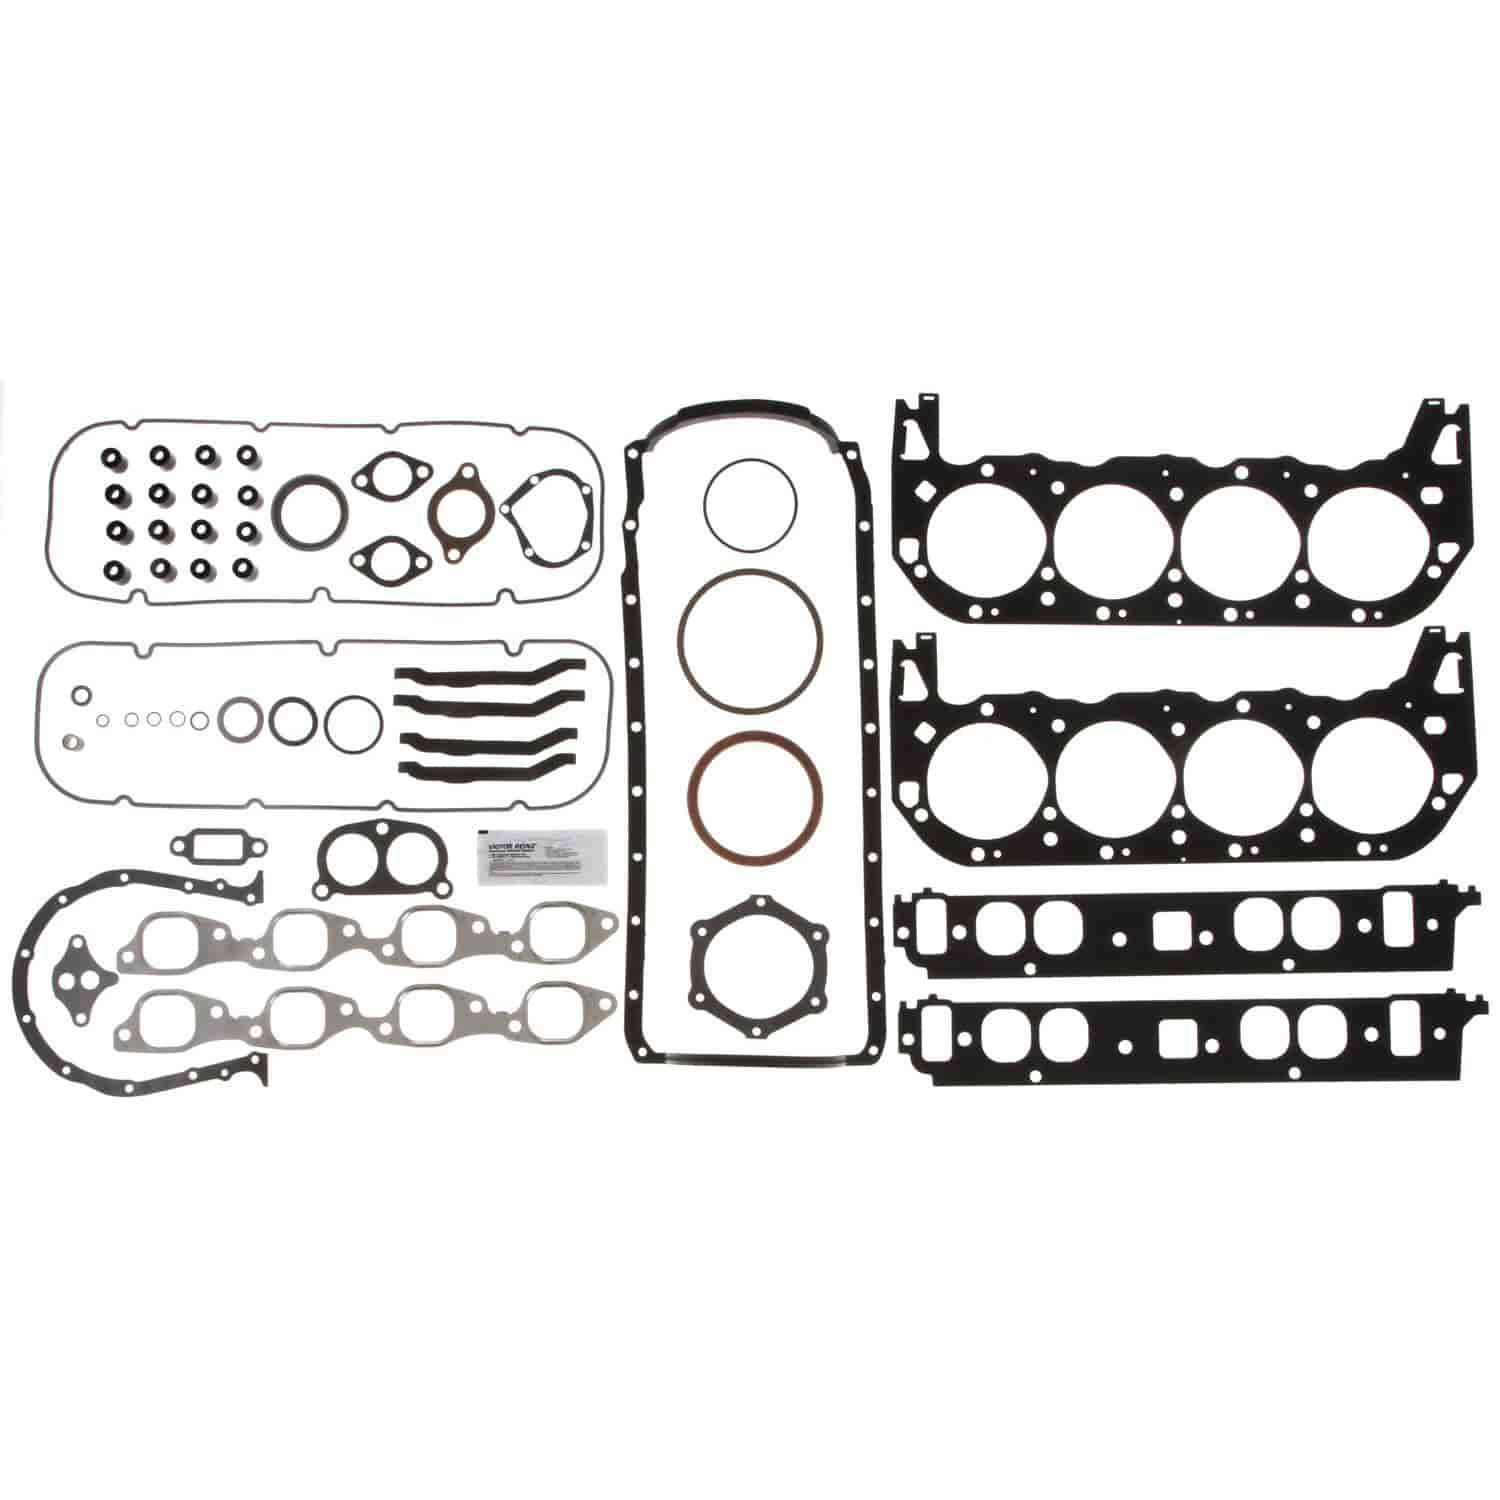 Clevite Mahle Engine Kit Gasket Set Big